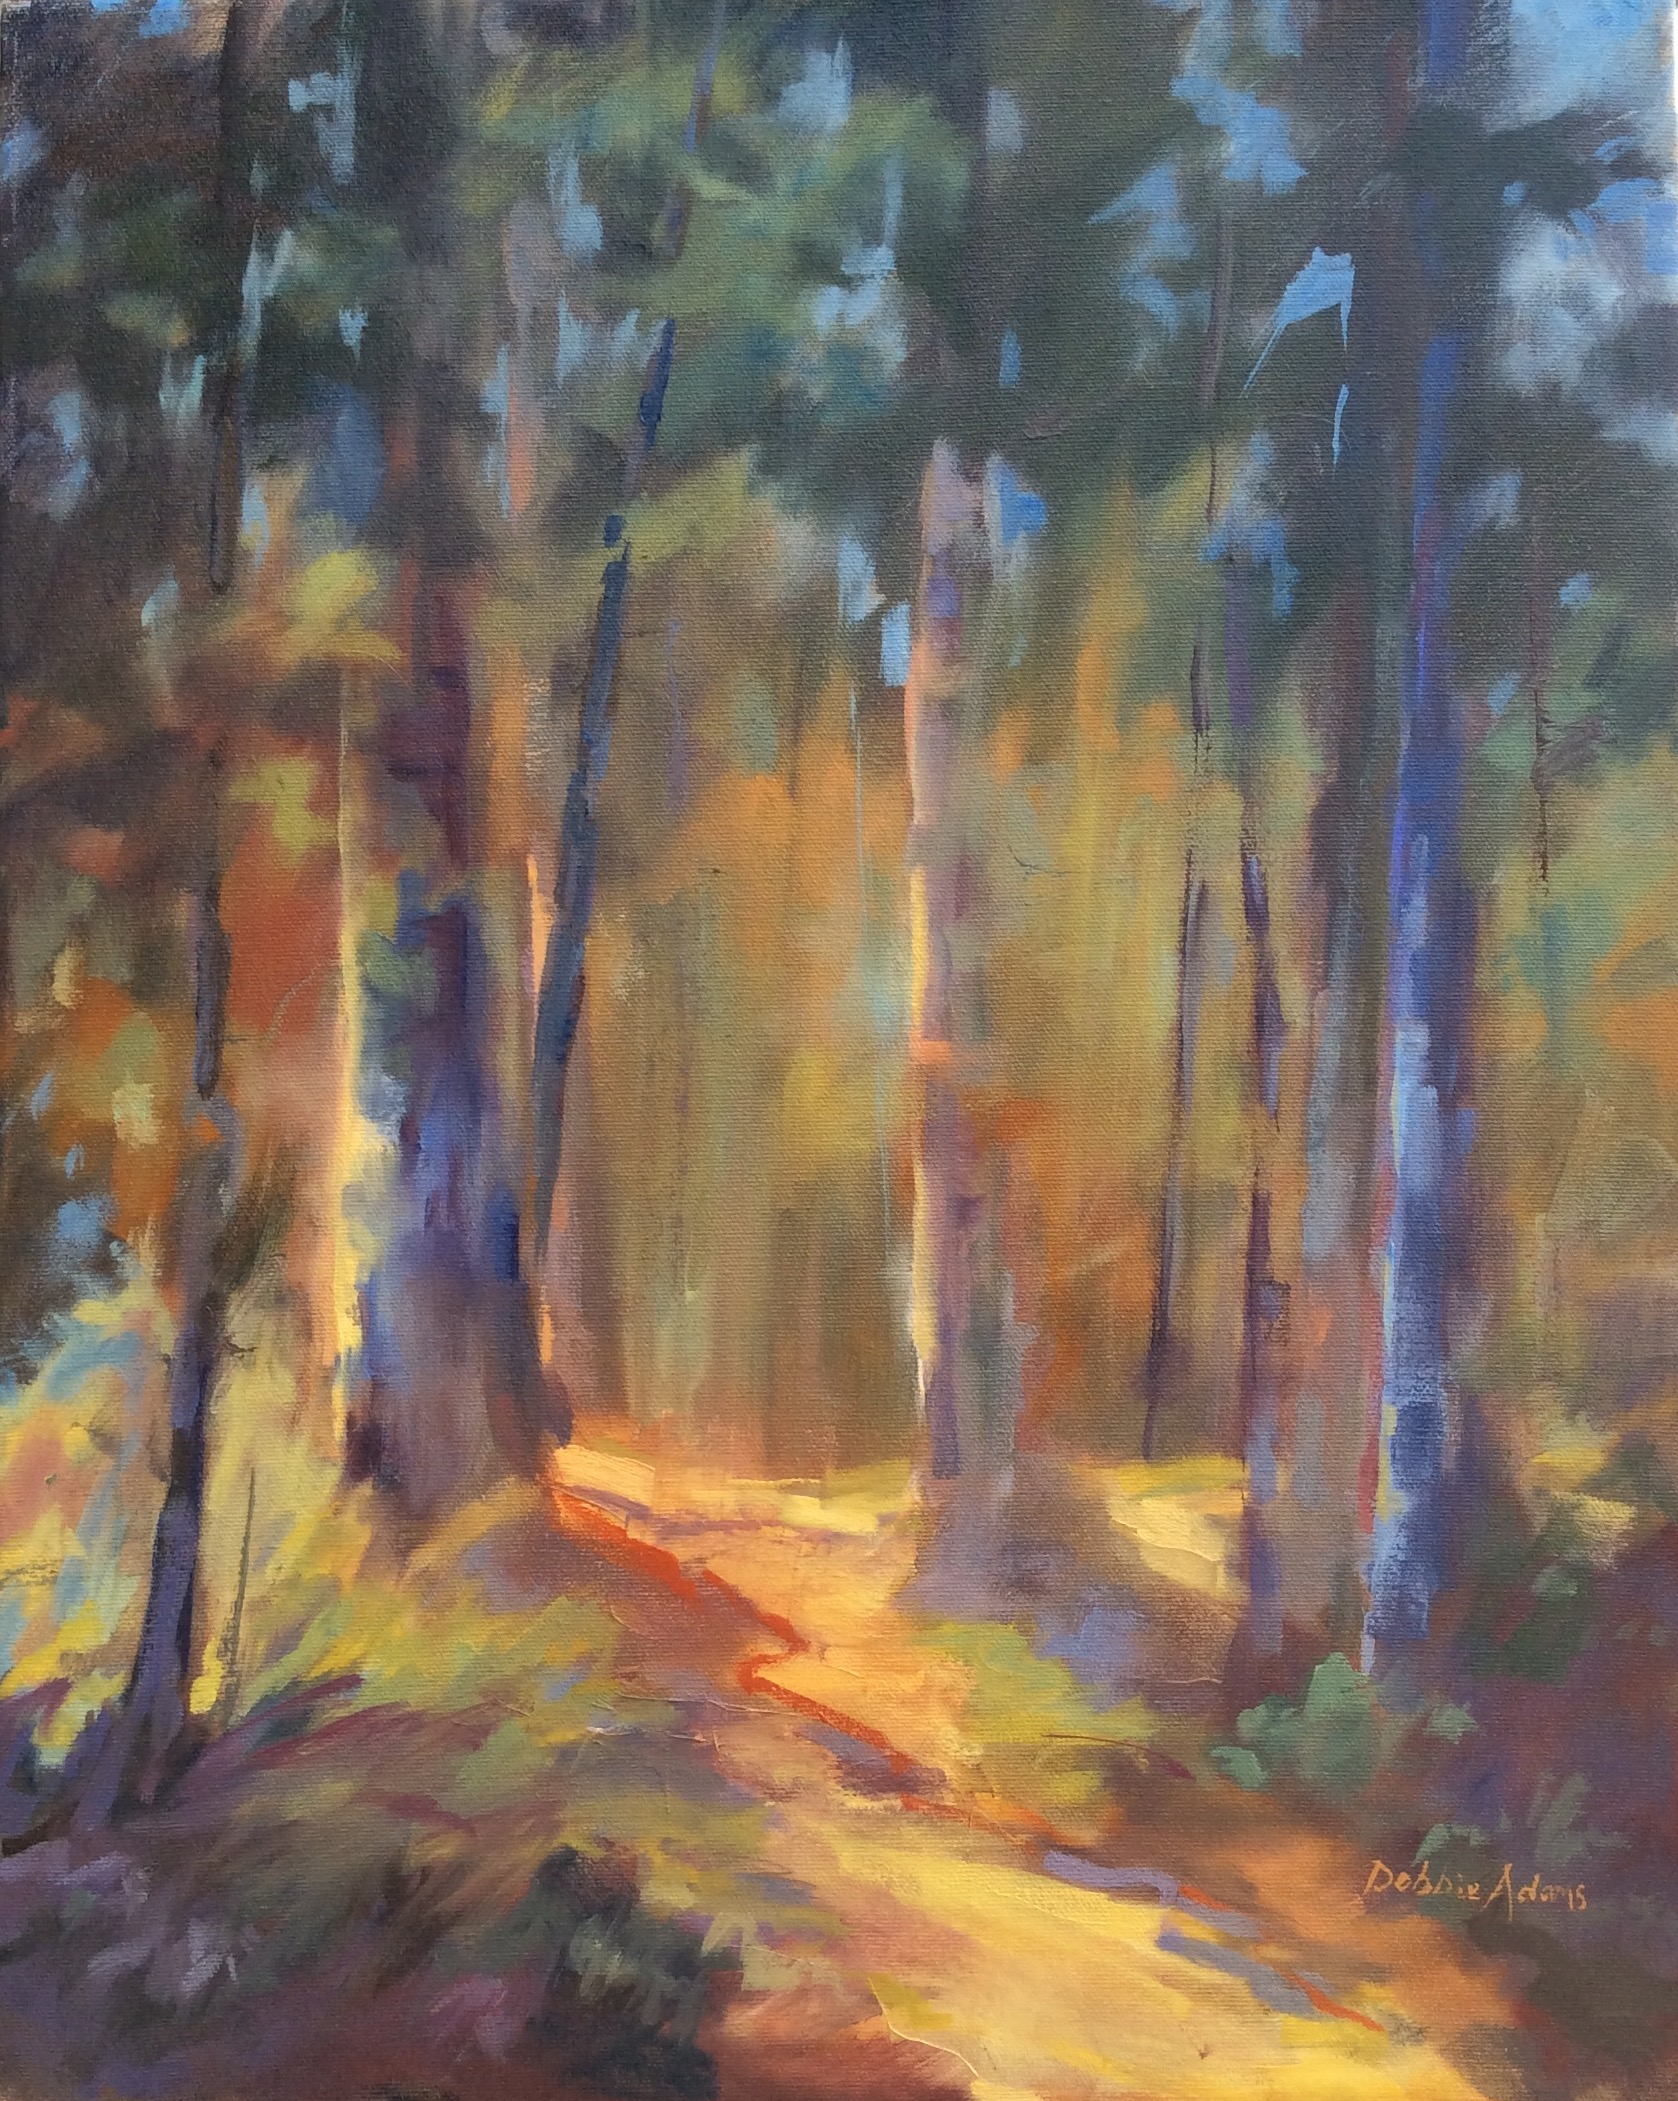 Among the Golden Light - 20x18 oil